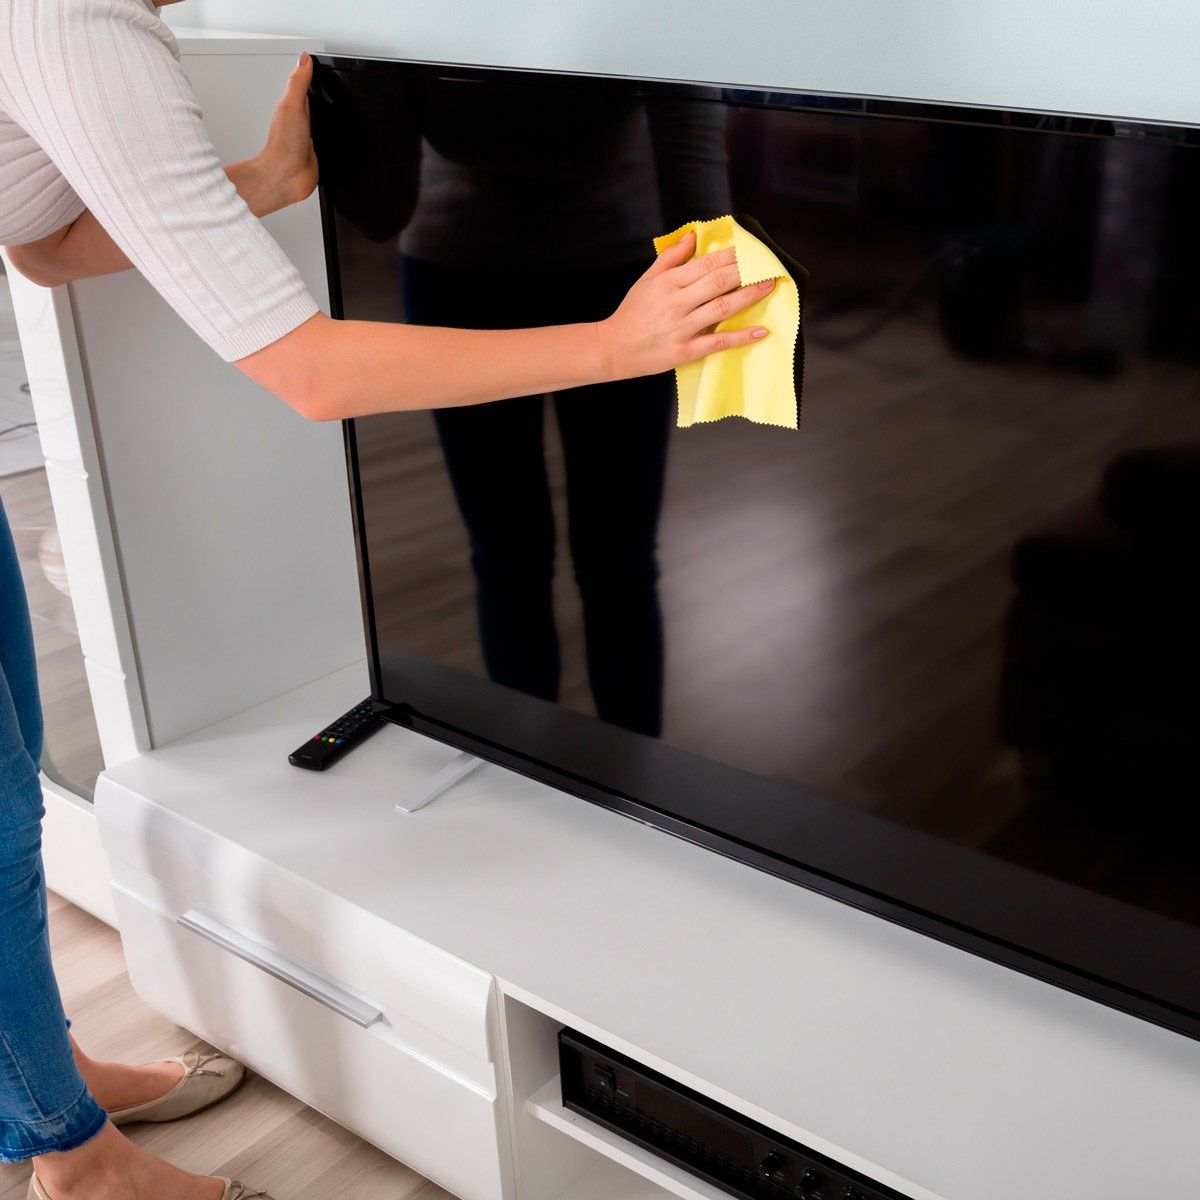 Clean Flat Screen Tv, Cleaning